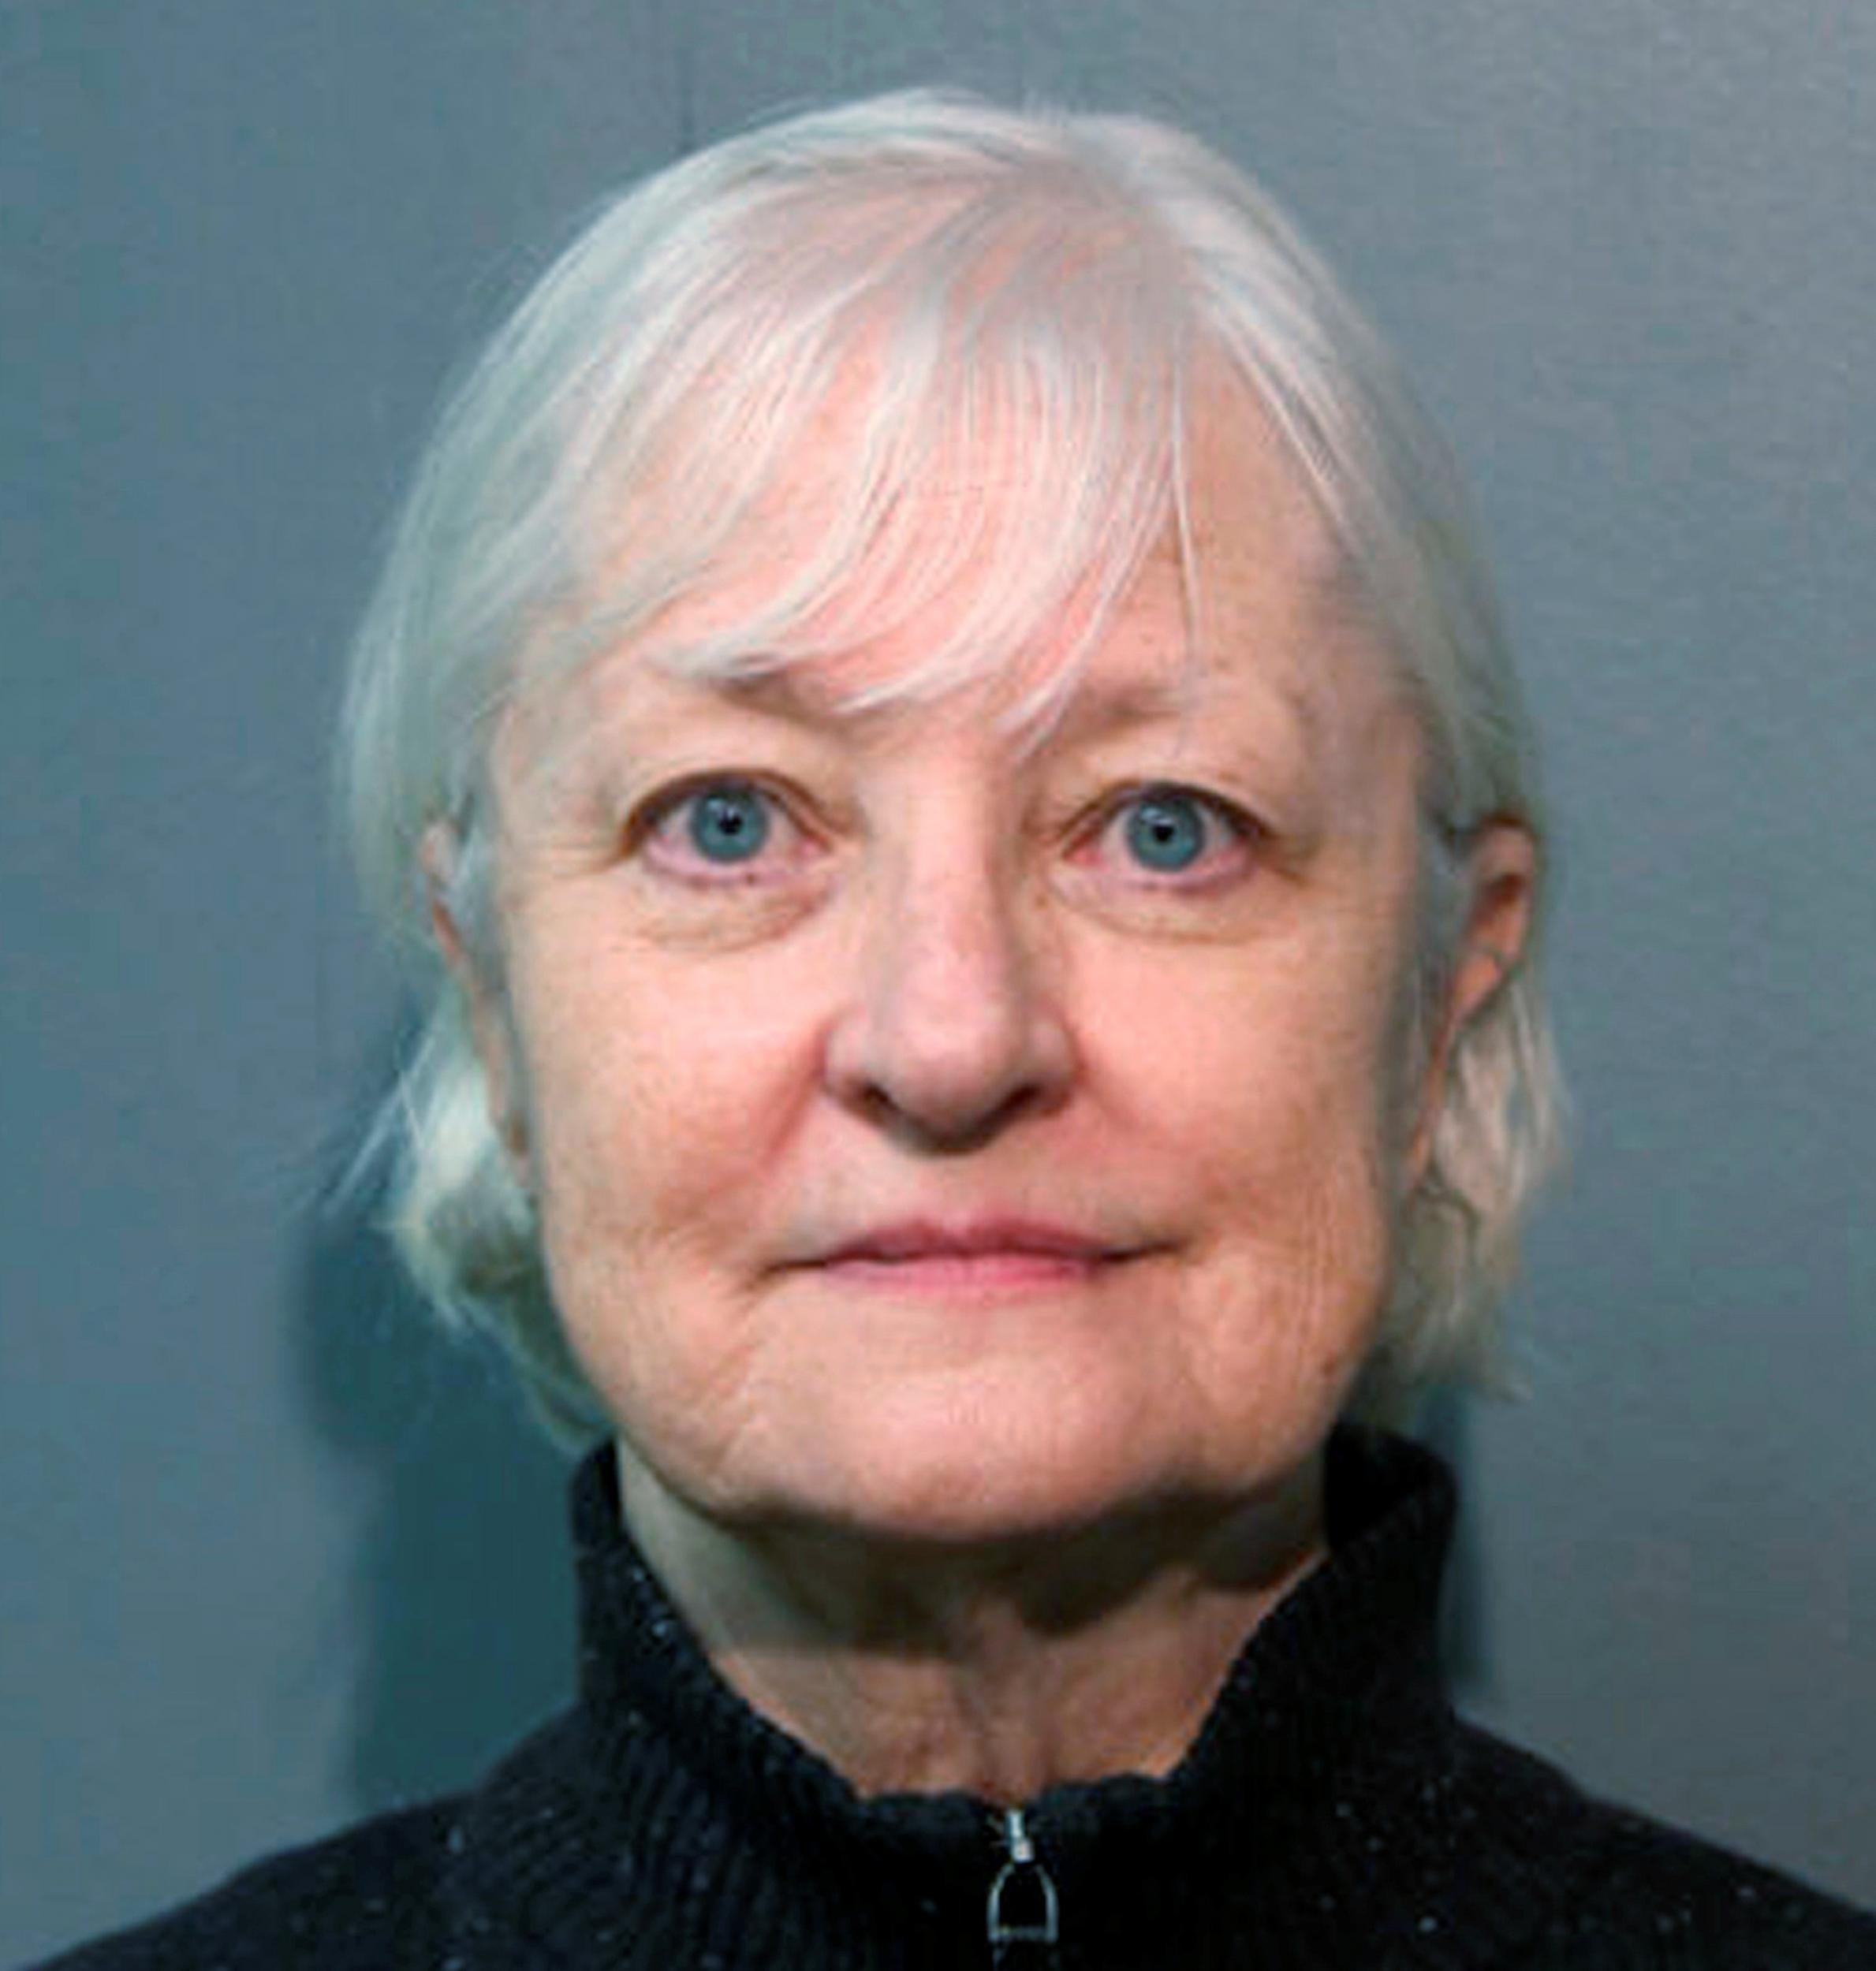 Serial Stowaway Caught Trying To Sneak Onto Another Flight The Independent Independent